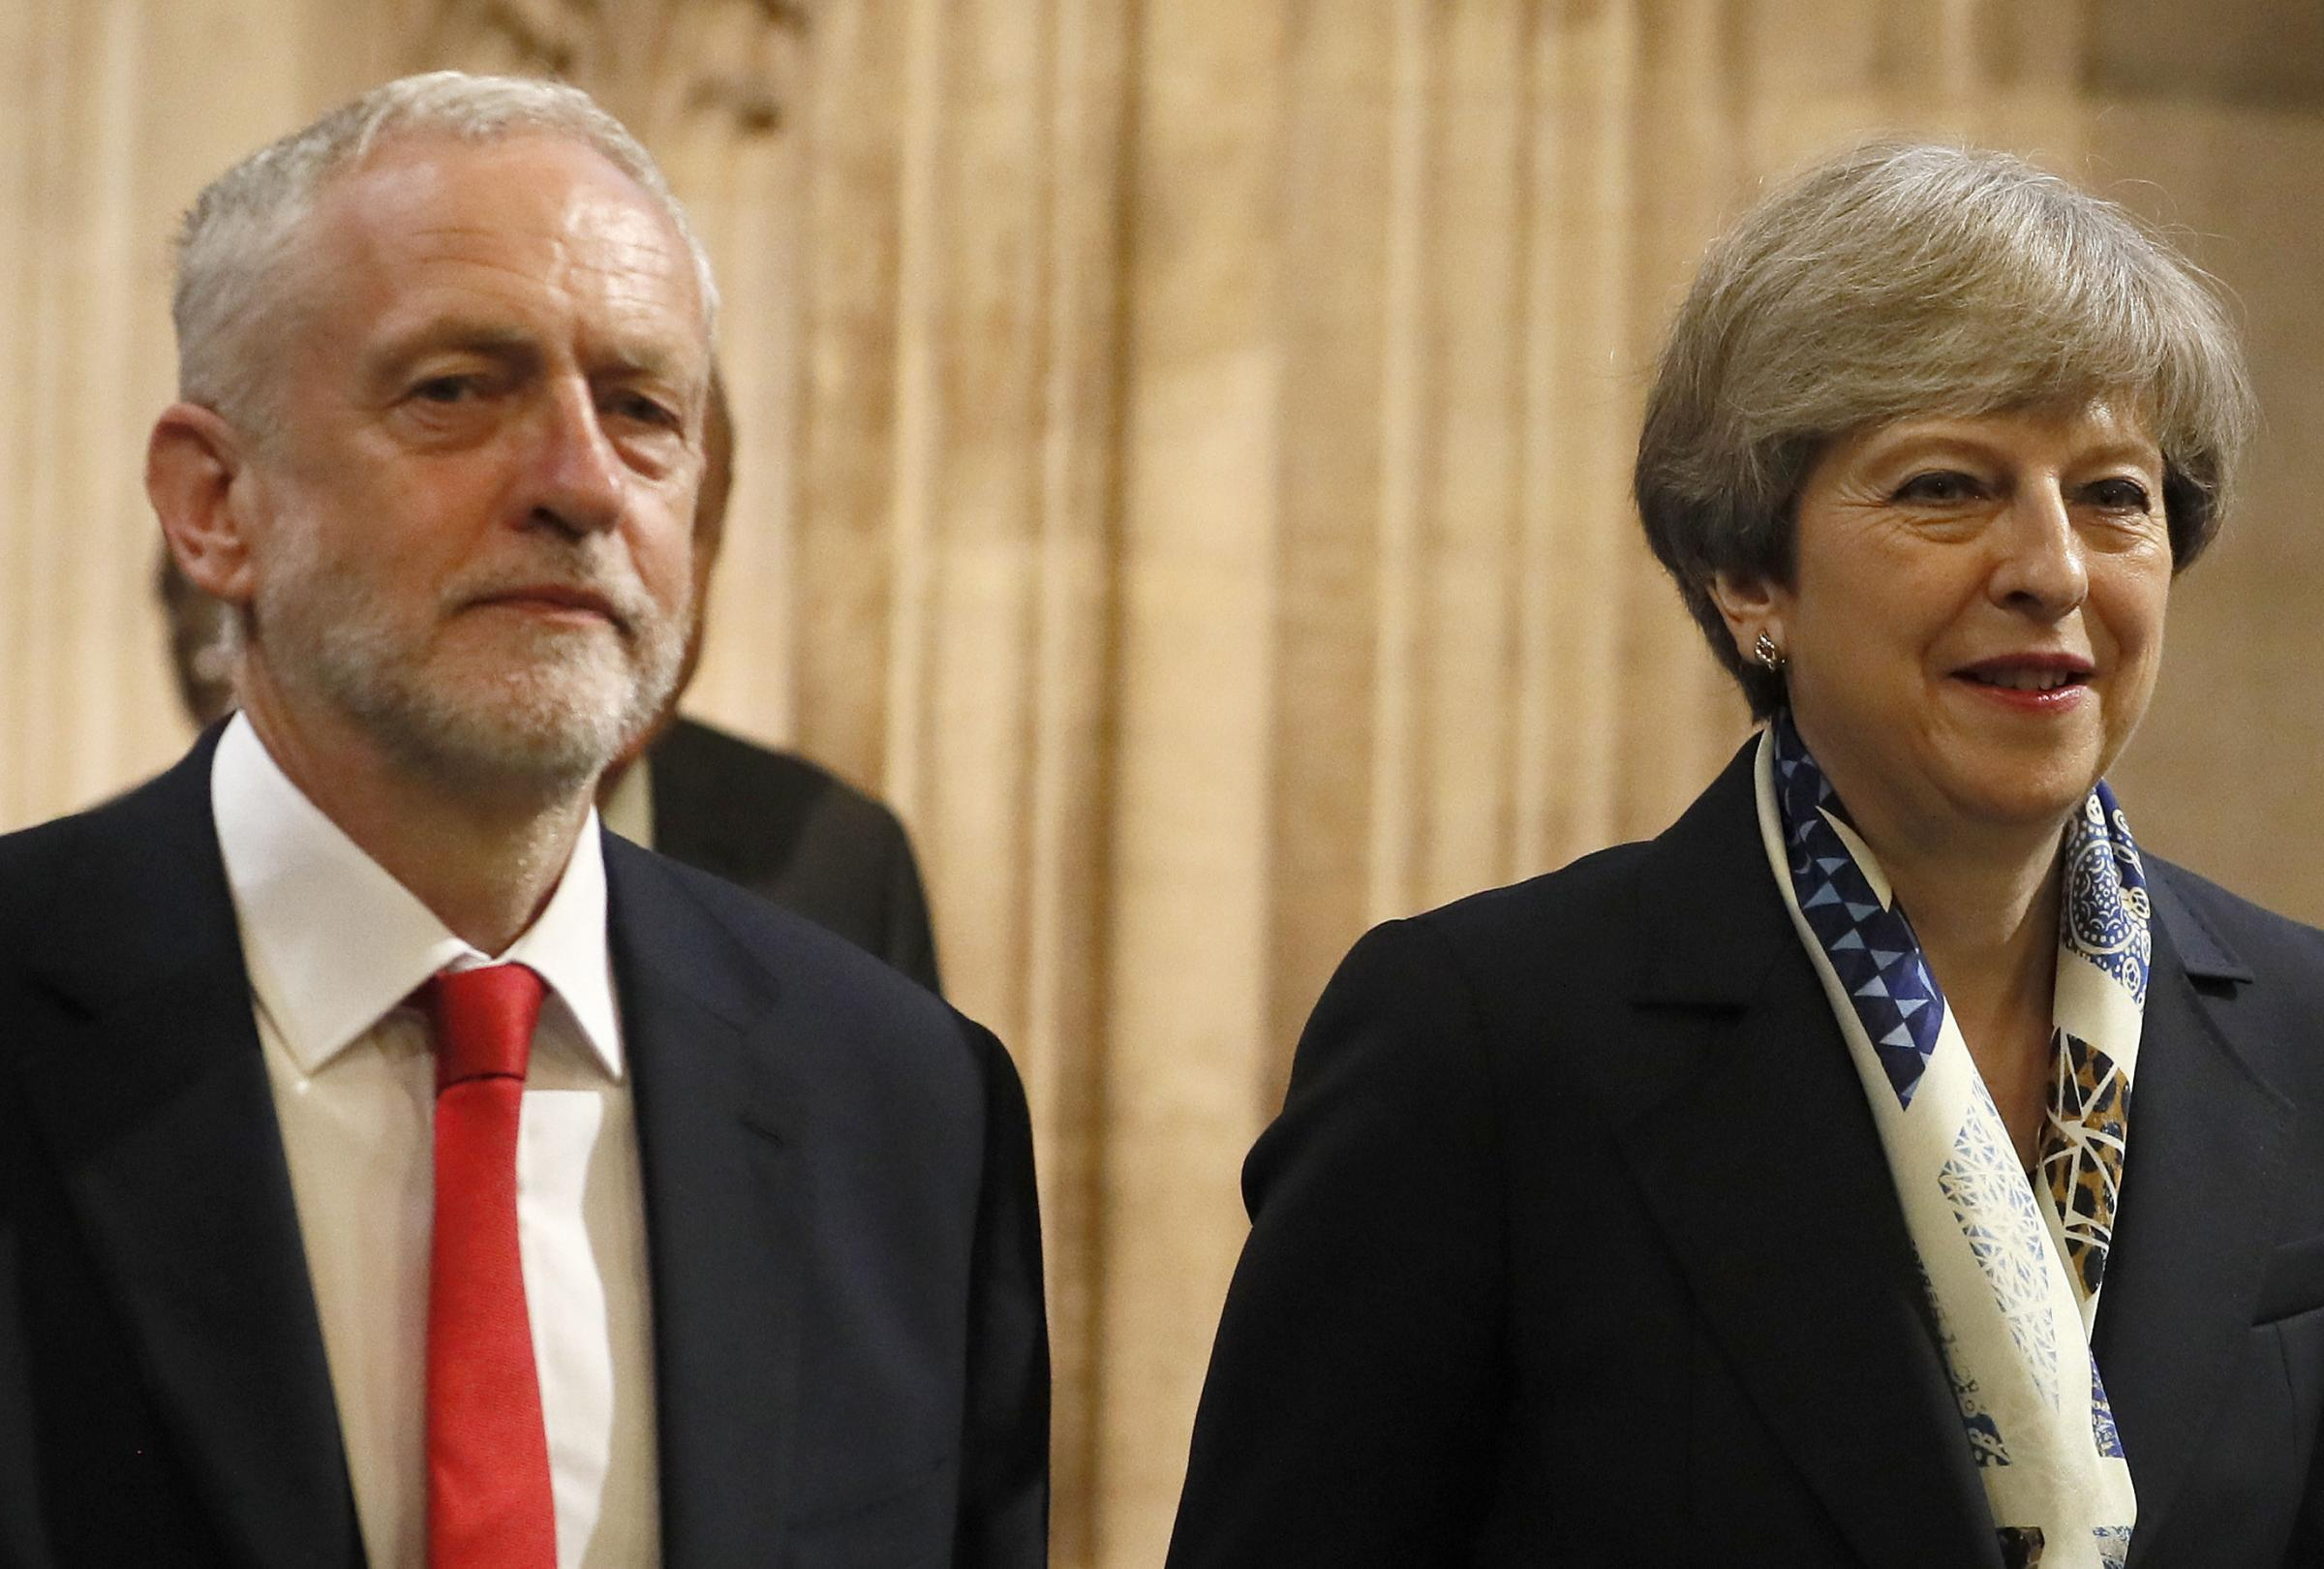 Theresa May wants TV debate with Jeremy Corbyn over her Brexit deal